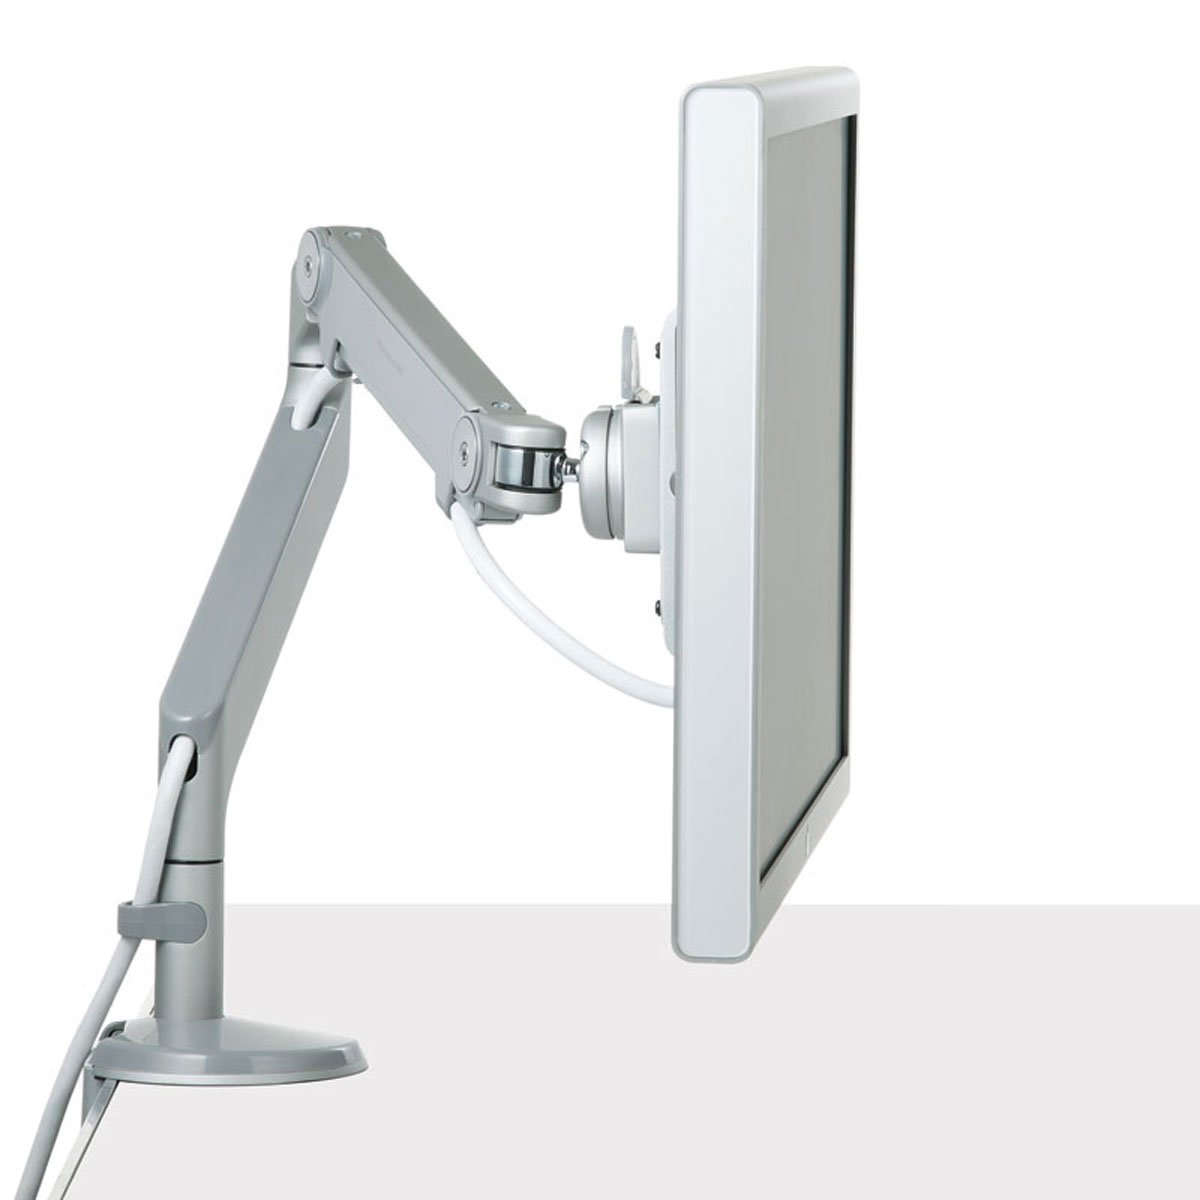 Humanscale M2 M2BS1S Adjustable Articulating Computer Monitor Arm - Bolt Through Mount with Base - Silver with Gray Trim